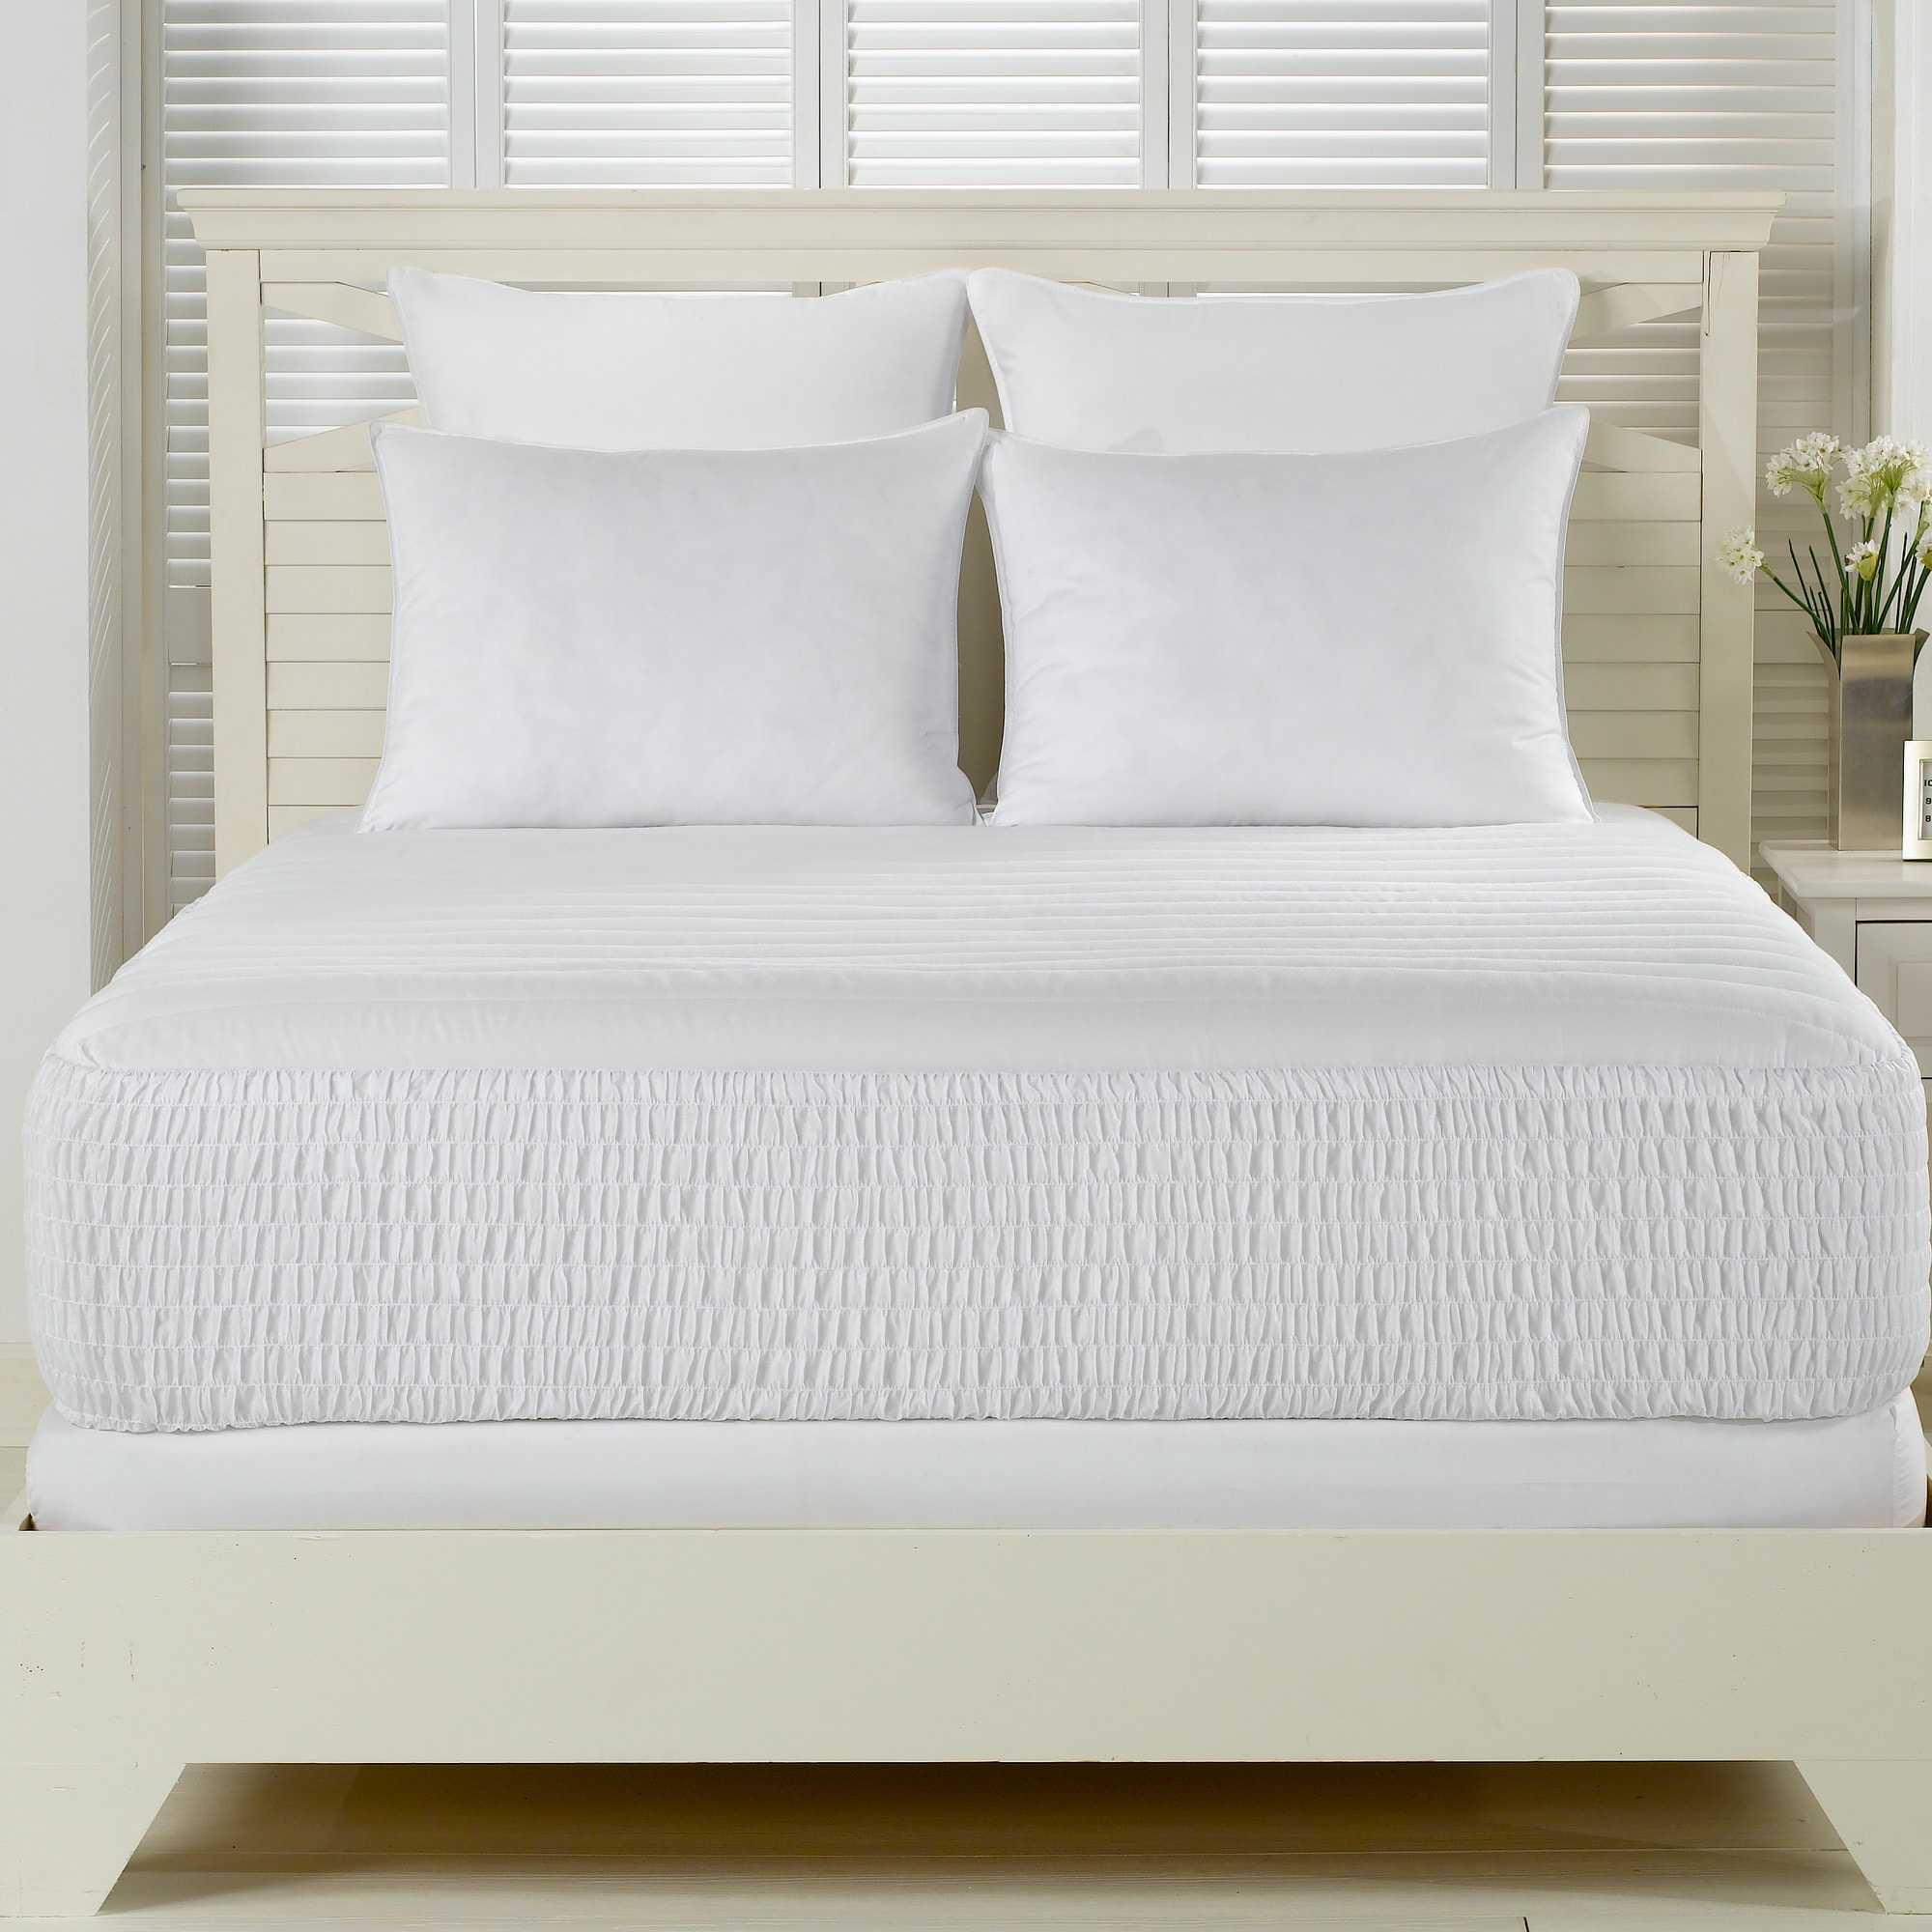 Simmons Beautyrest Beautyrest 300 Thread Count Premium Cotton Mattress Pad by Overstock